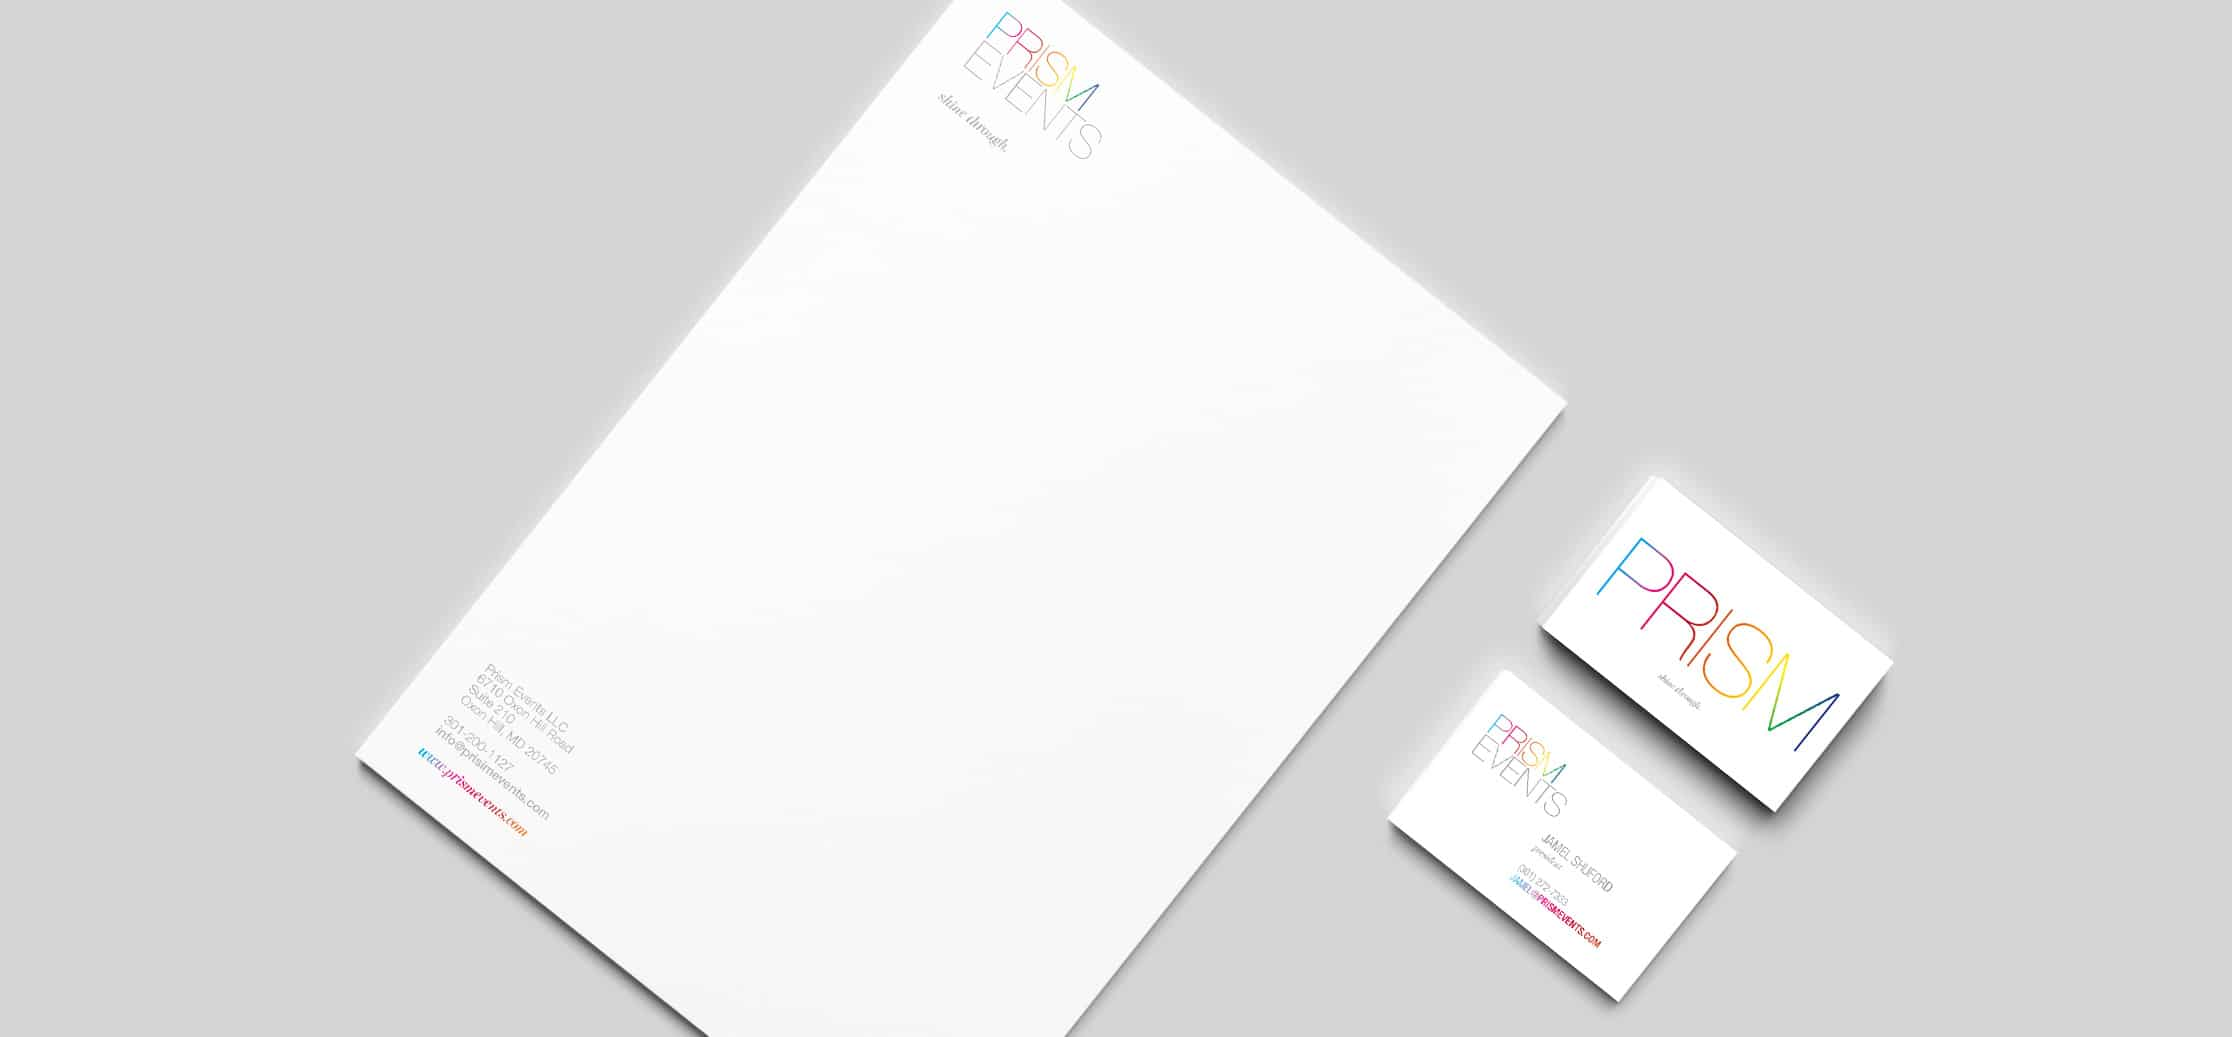 prism-stationery-fullwidth